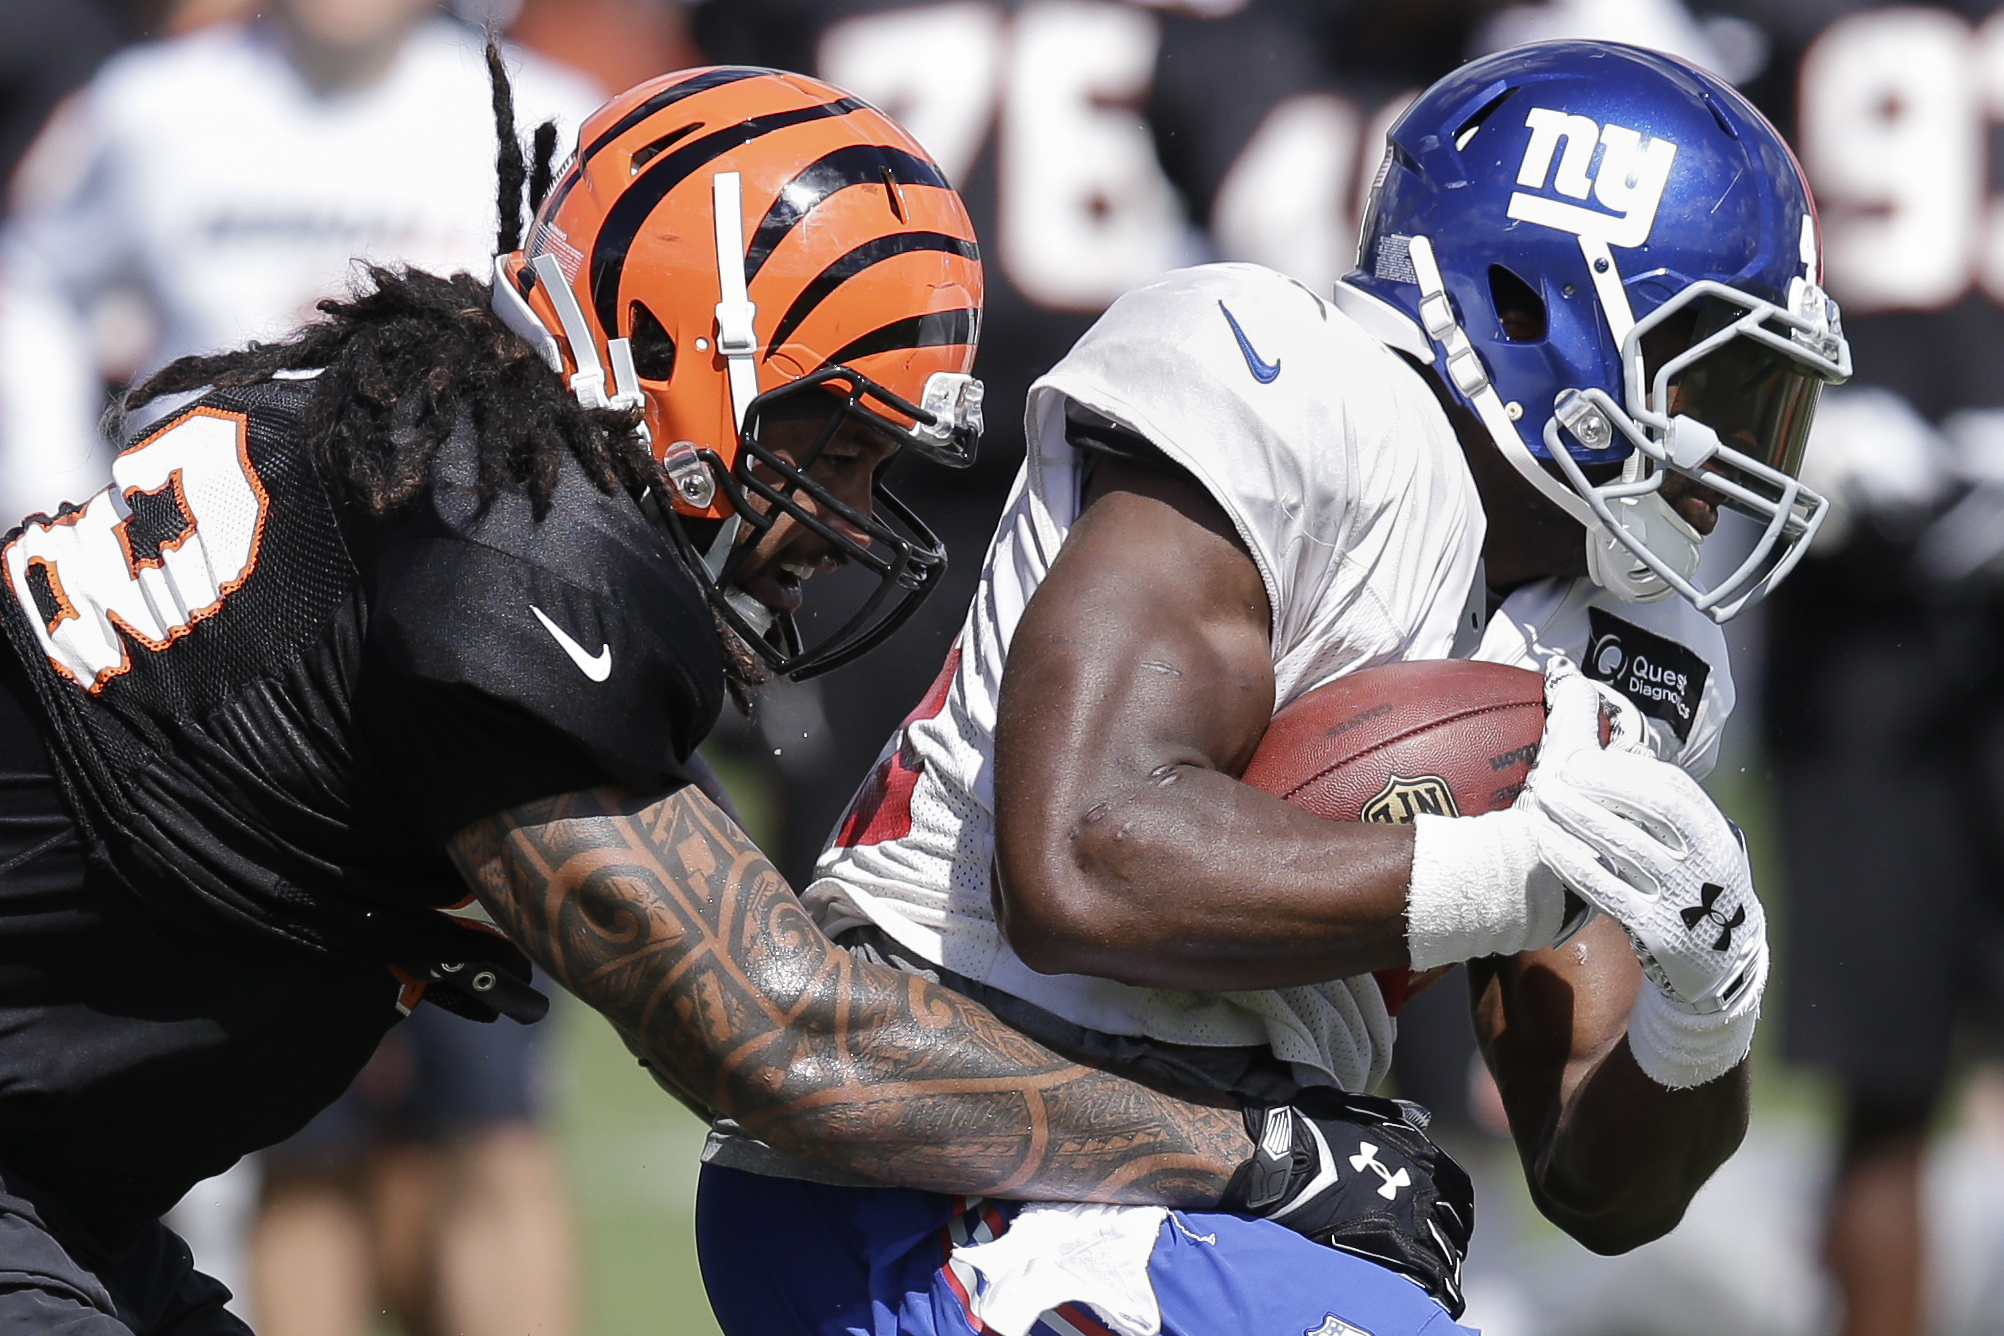 Cincinnati Bengals linebacker Rey Maualuga, left, tries to stop New York Giants running back Andre Williams during a joint NFL football training camp, Wednesday, Aug. 12, 2015, in Cincinnati. (AP Photo/John Minchillo)